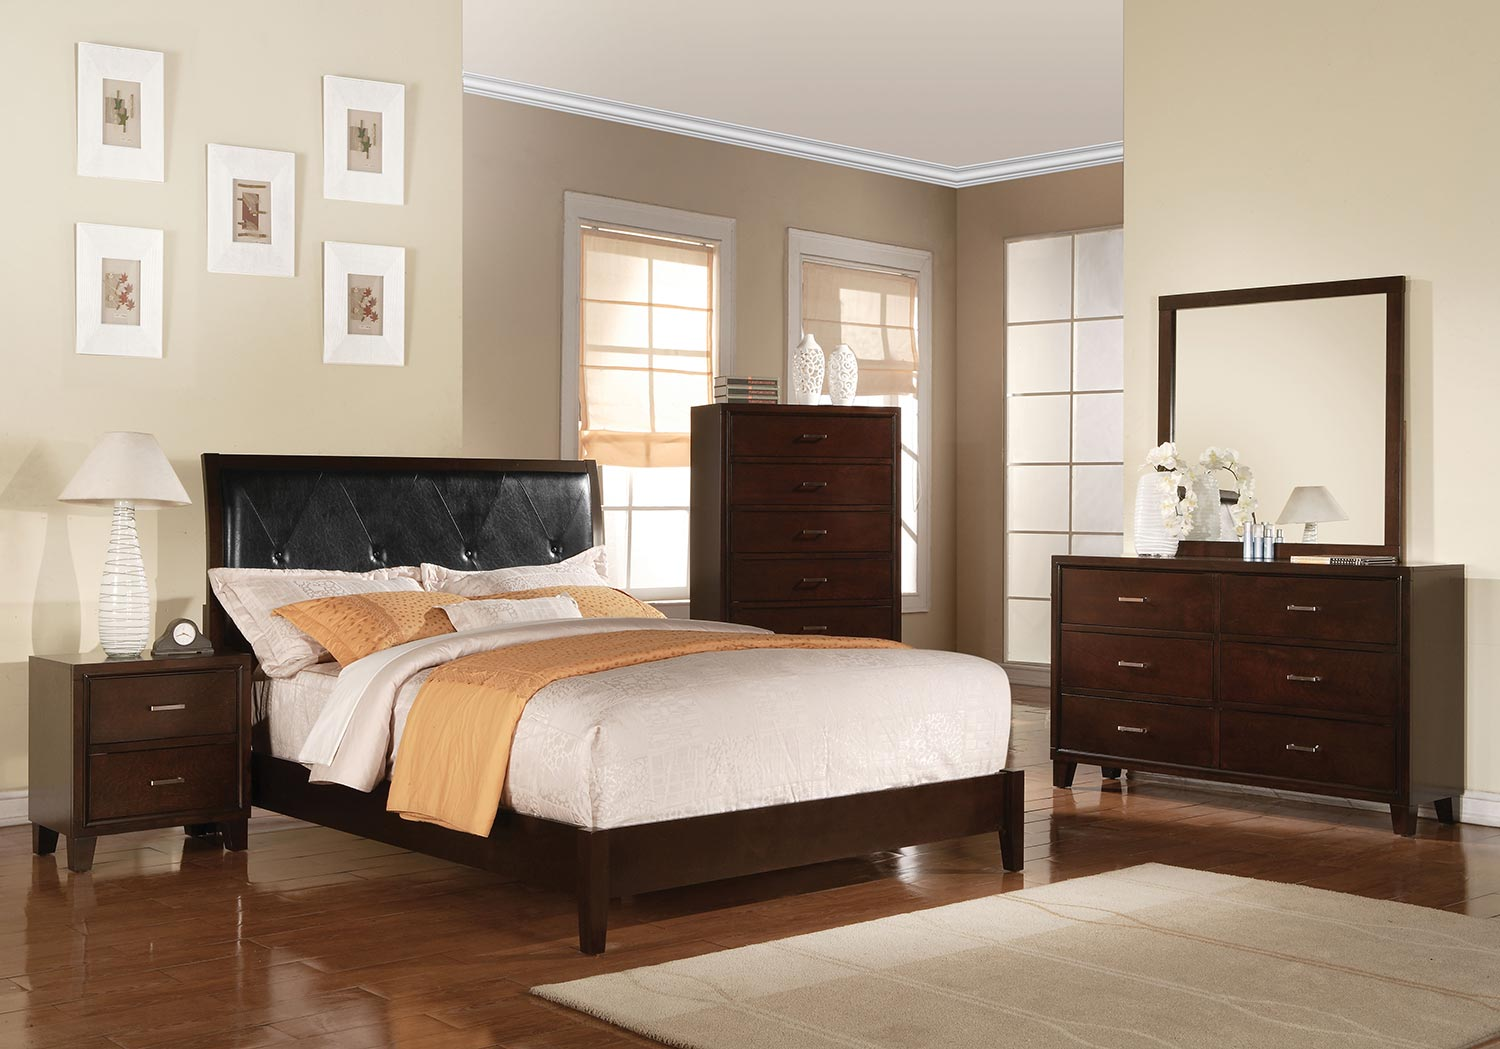 Acme Tyler Bedroom Set (Padded HB) - Black Vinyl/Cappuccino